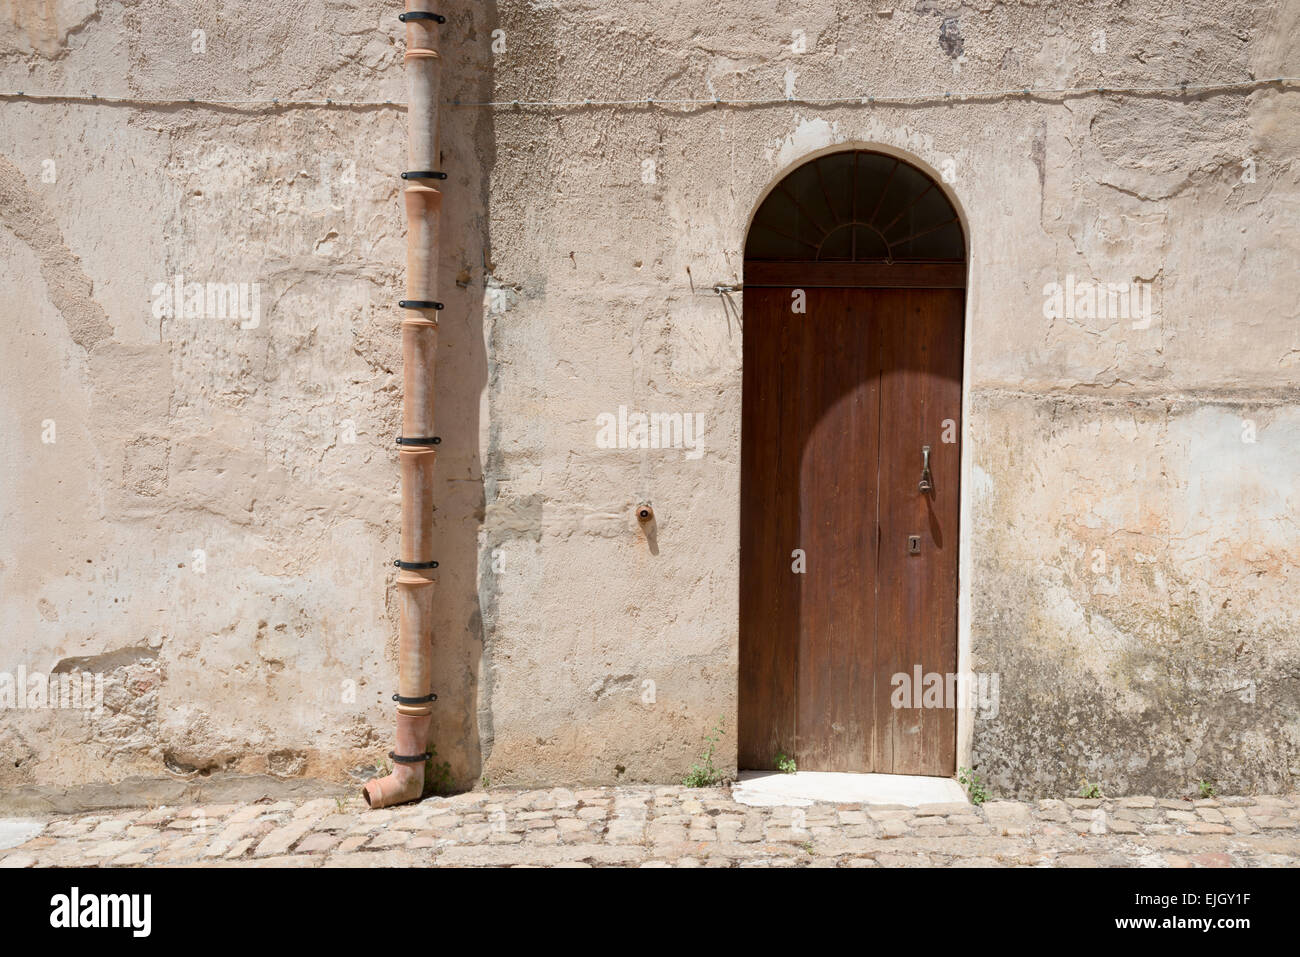 Door and terracotta drainpipe on a medieval building in Cefalu Sicily - Stock Image